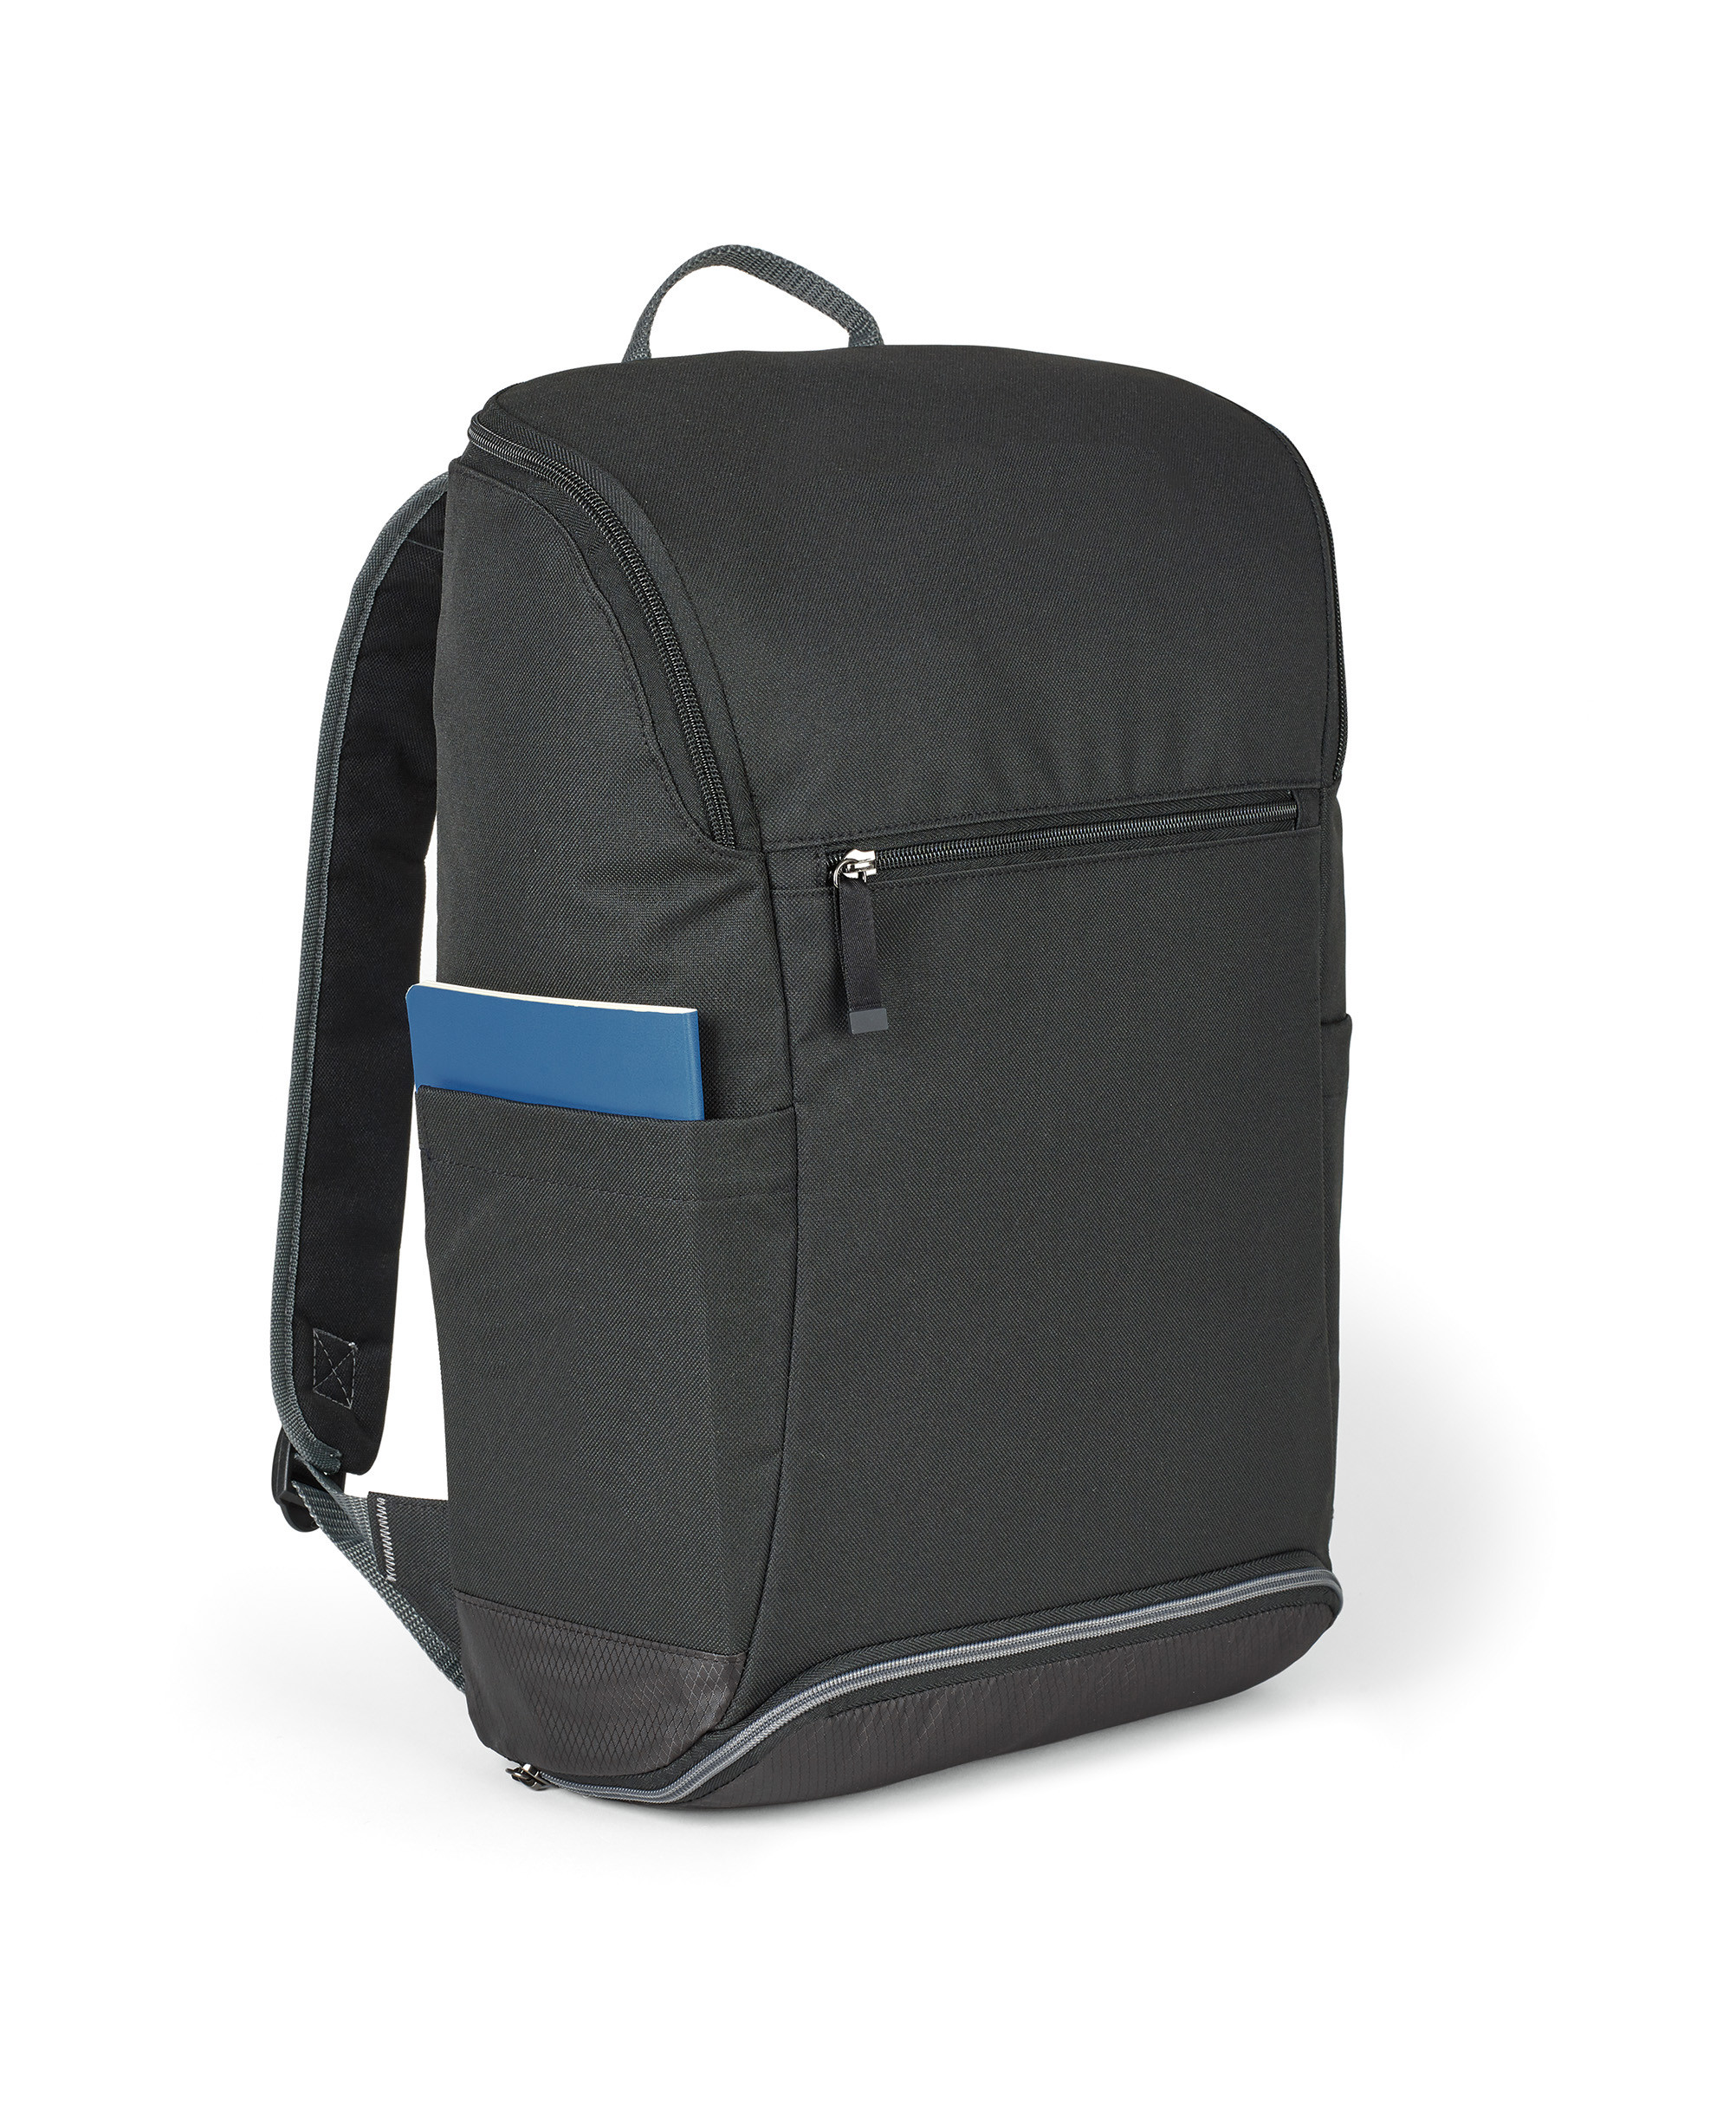 Gemline 100054 - All Day Computer Backpack